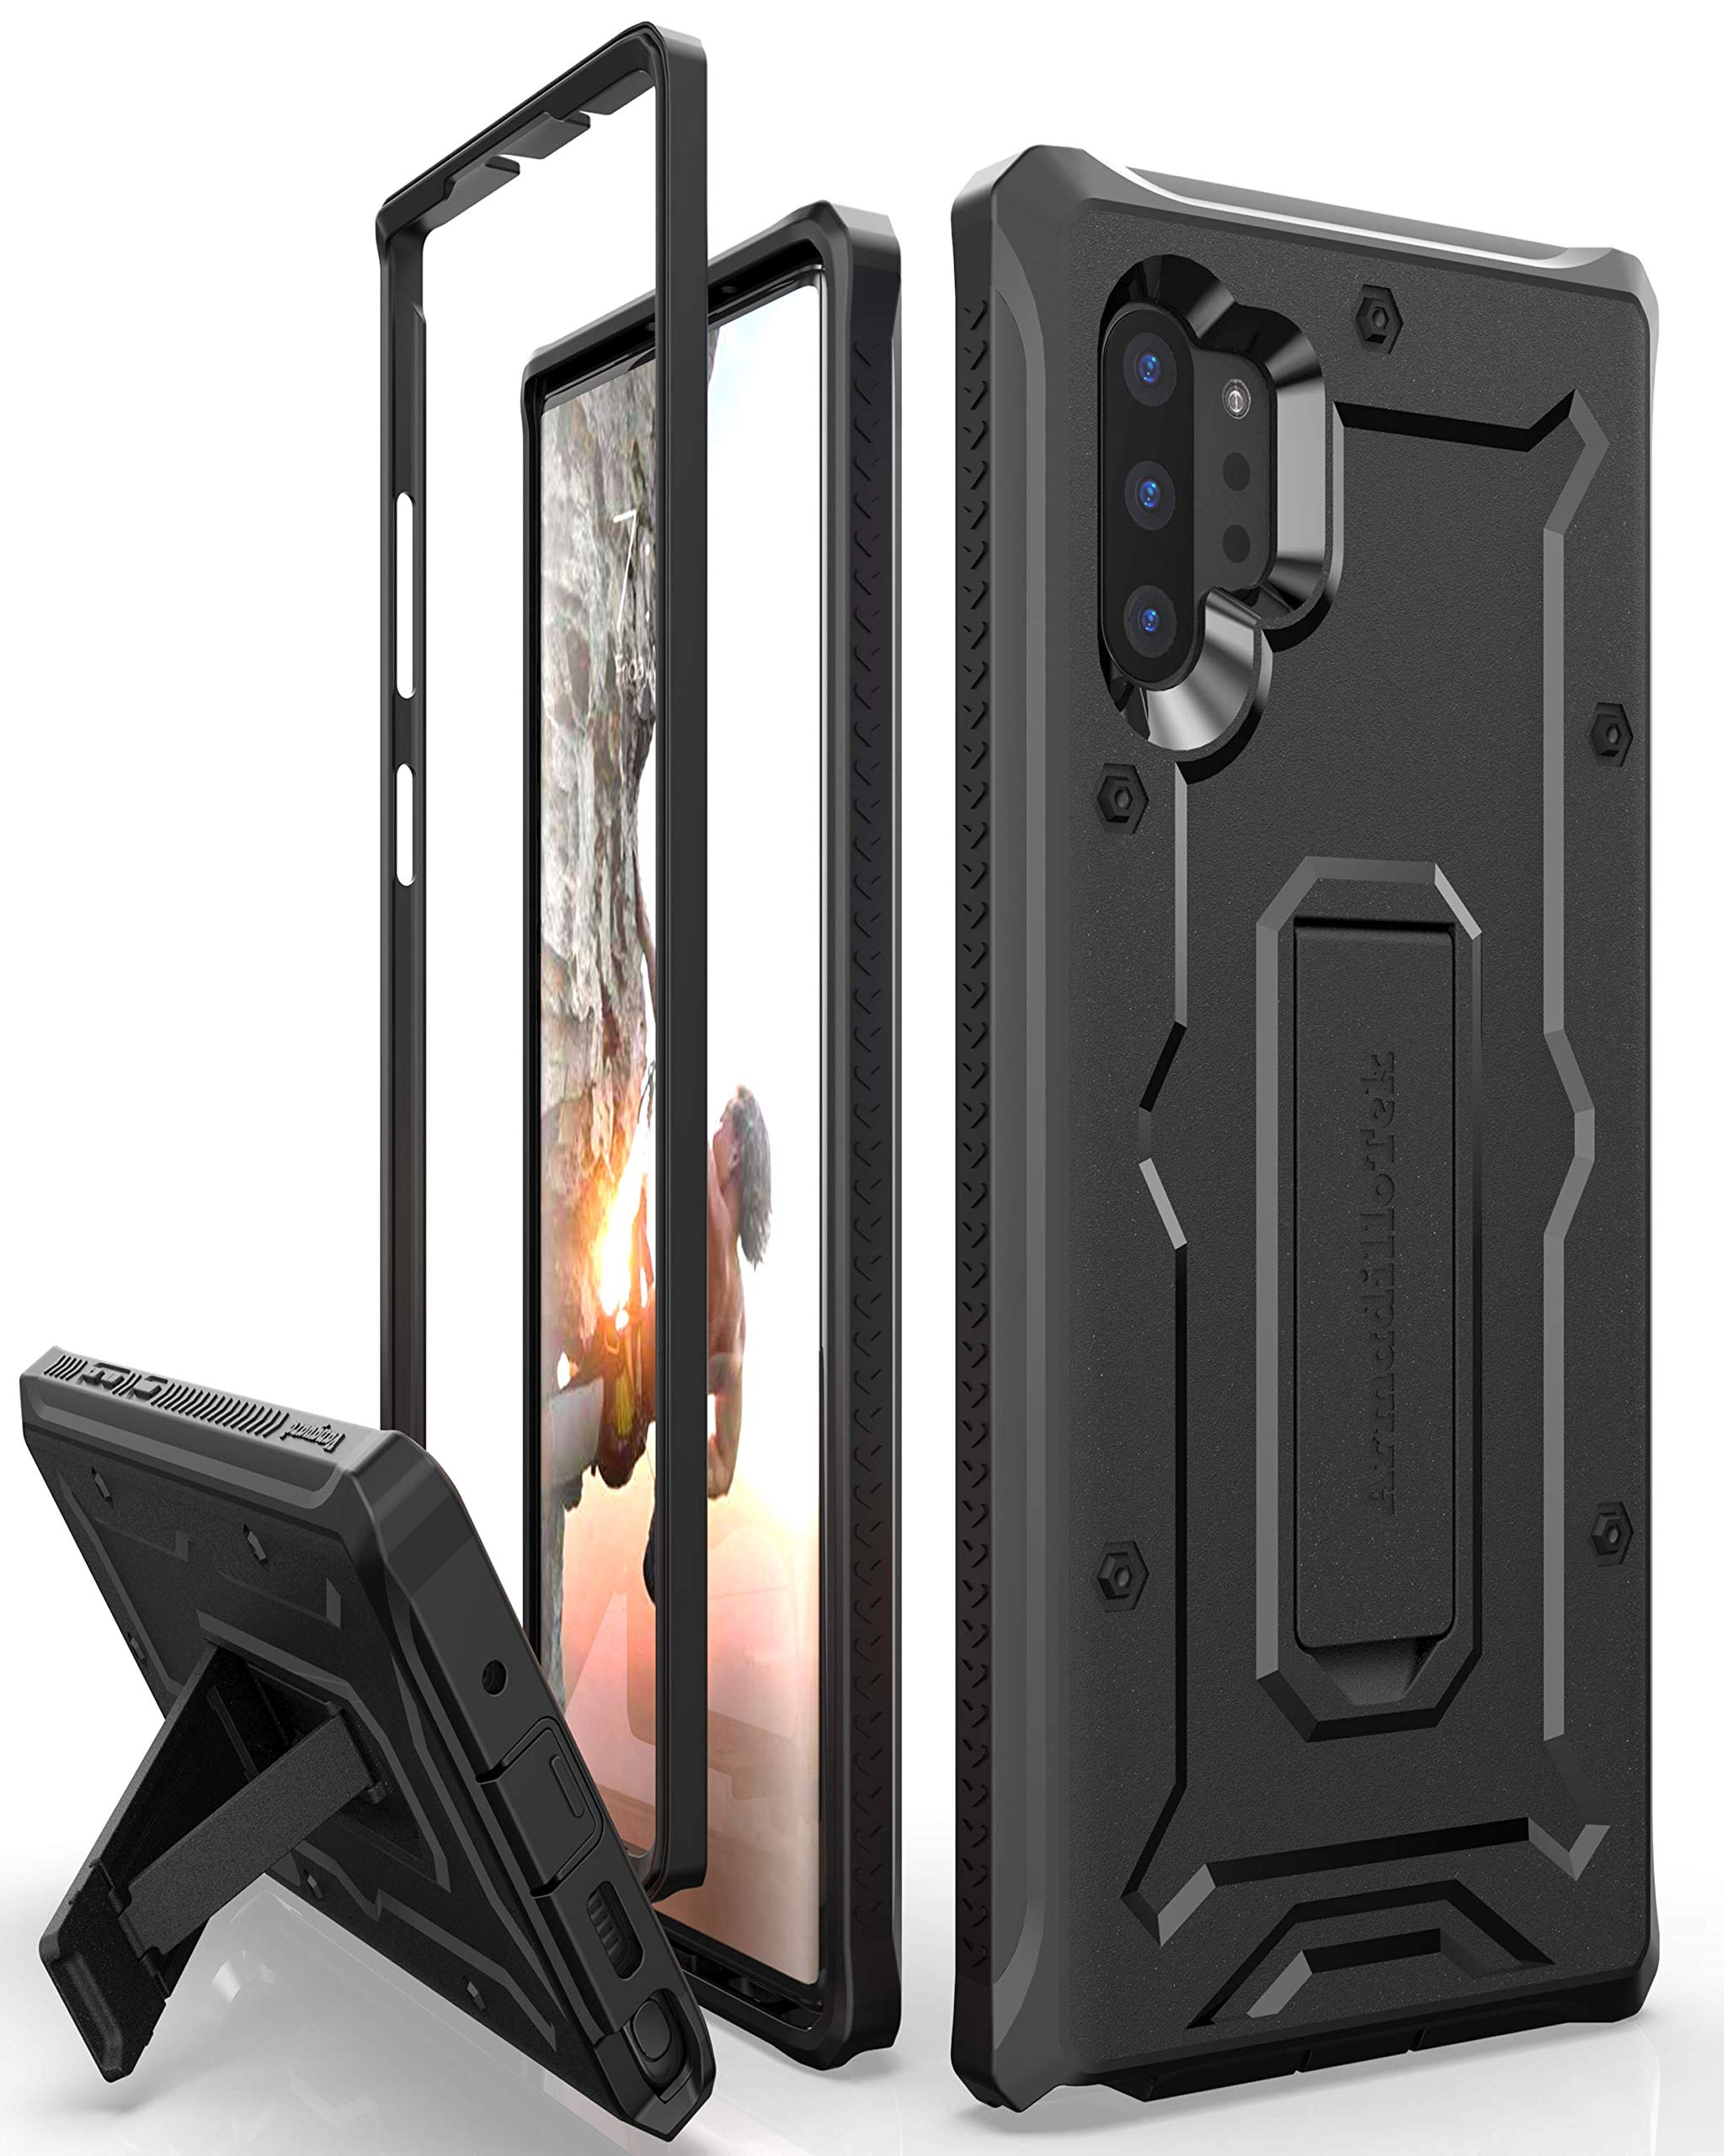 ArmadilloTek Vanguard Designed for Samsung Galaxy Note 10+Plus / Note 10 Plus 5G Case (2019 Release) Military Grade Full-Body Rugged with Kickstand Without Built-in Screen Protector - Black by ArmadilloTek